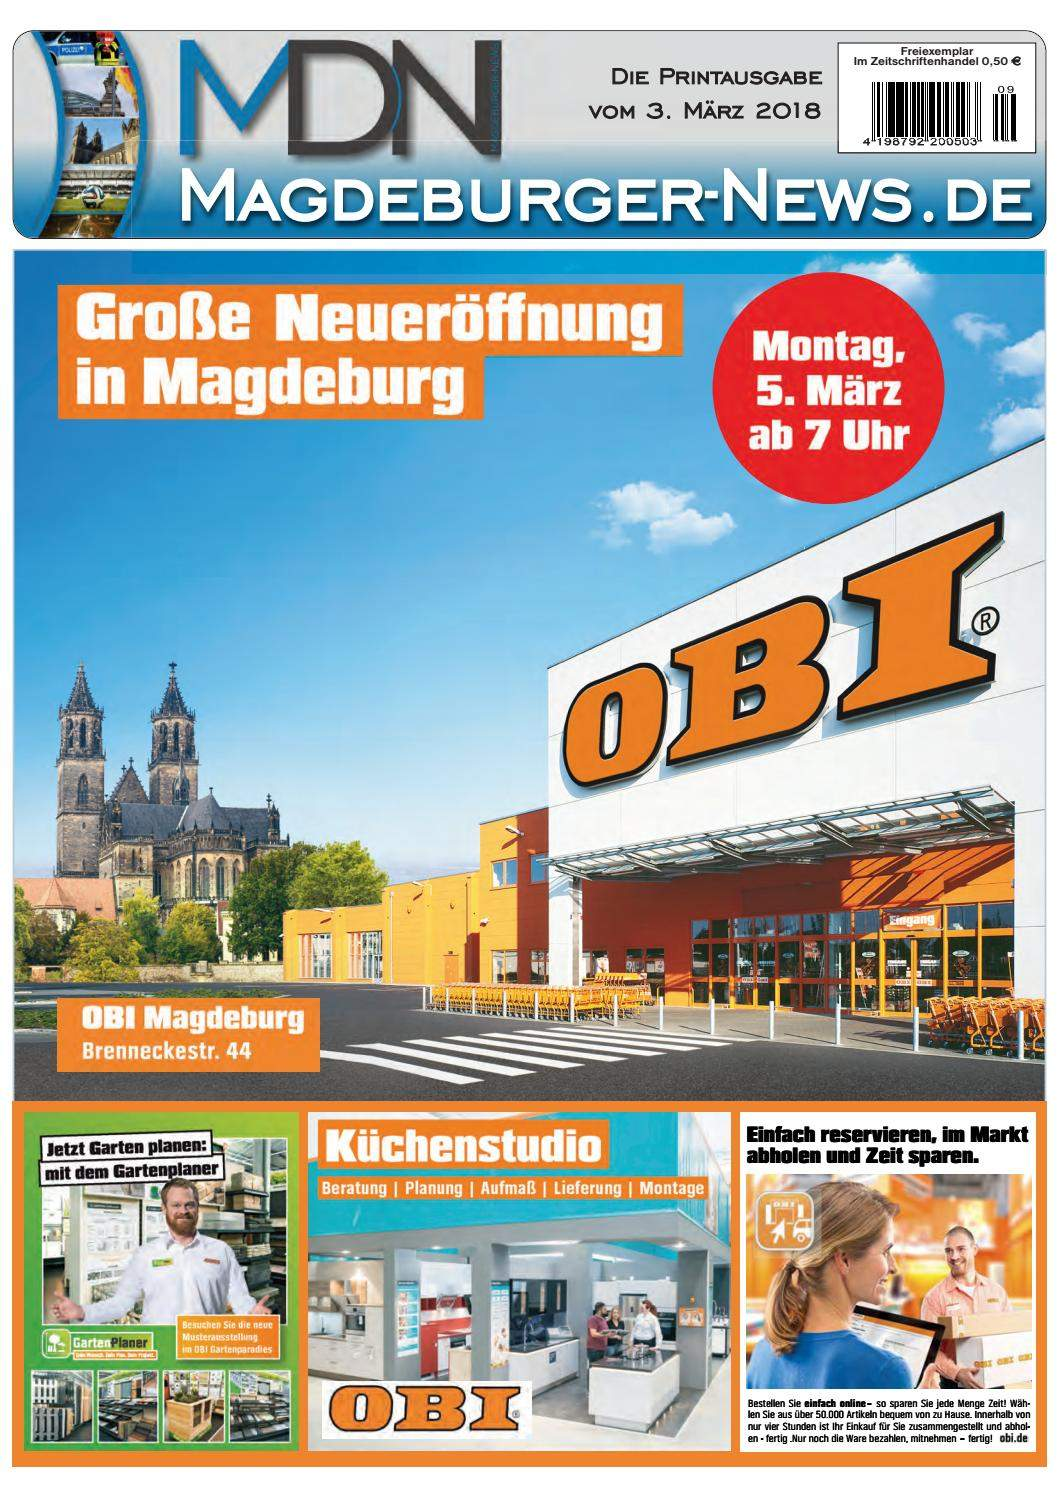 Pizza Garten aschersleben Reizend Magdeburger News De by Mdnews18 issuu